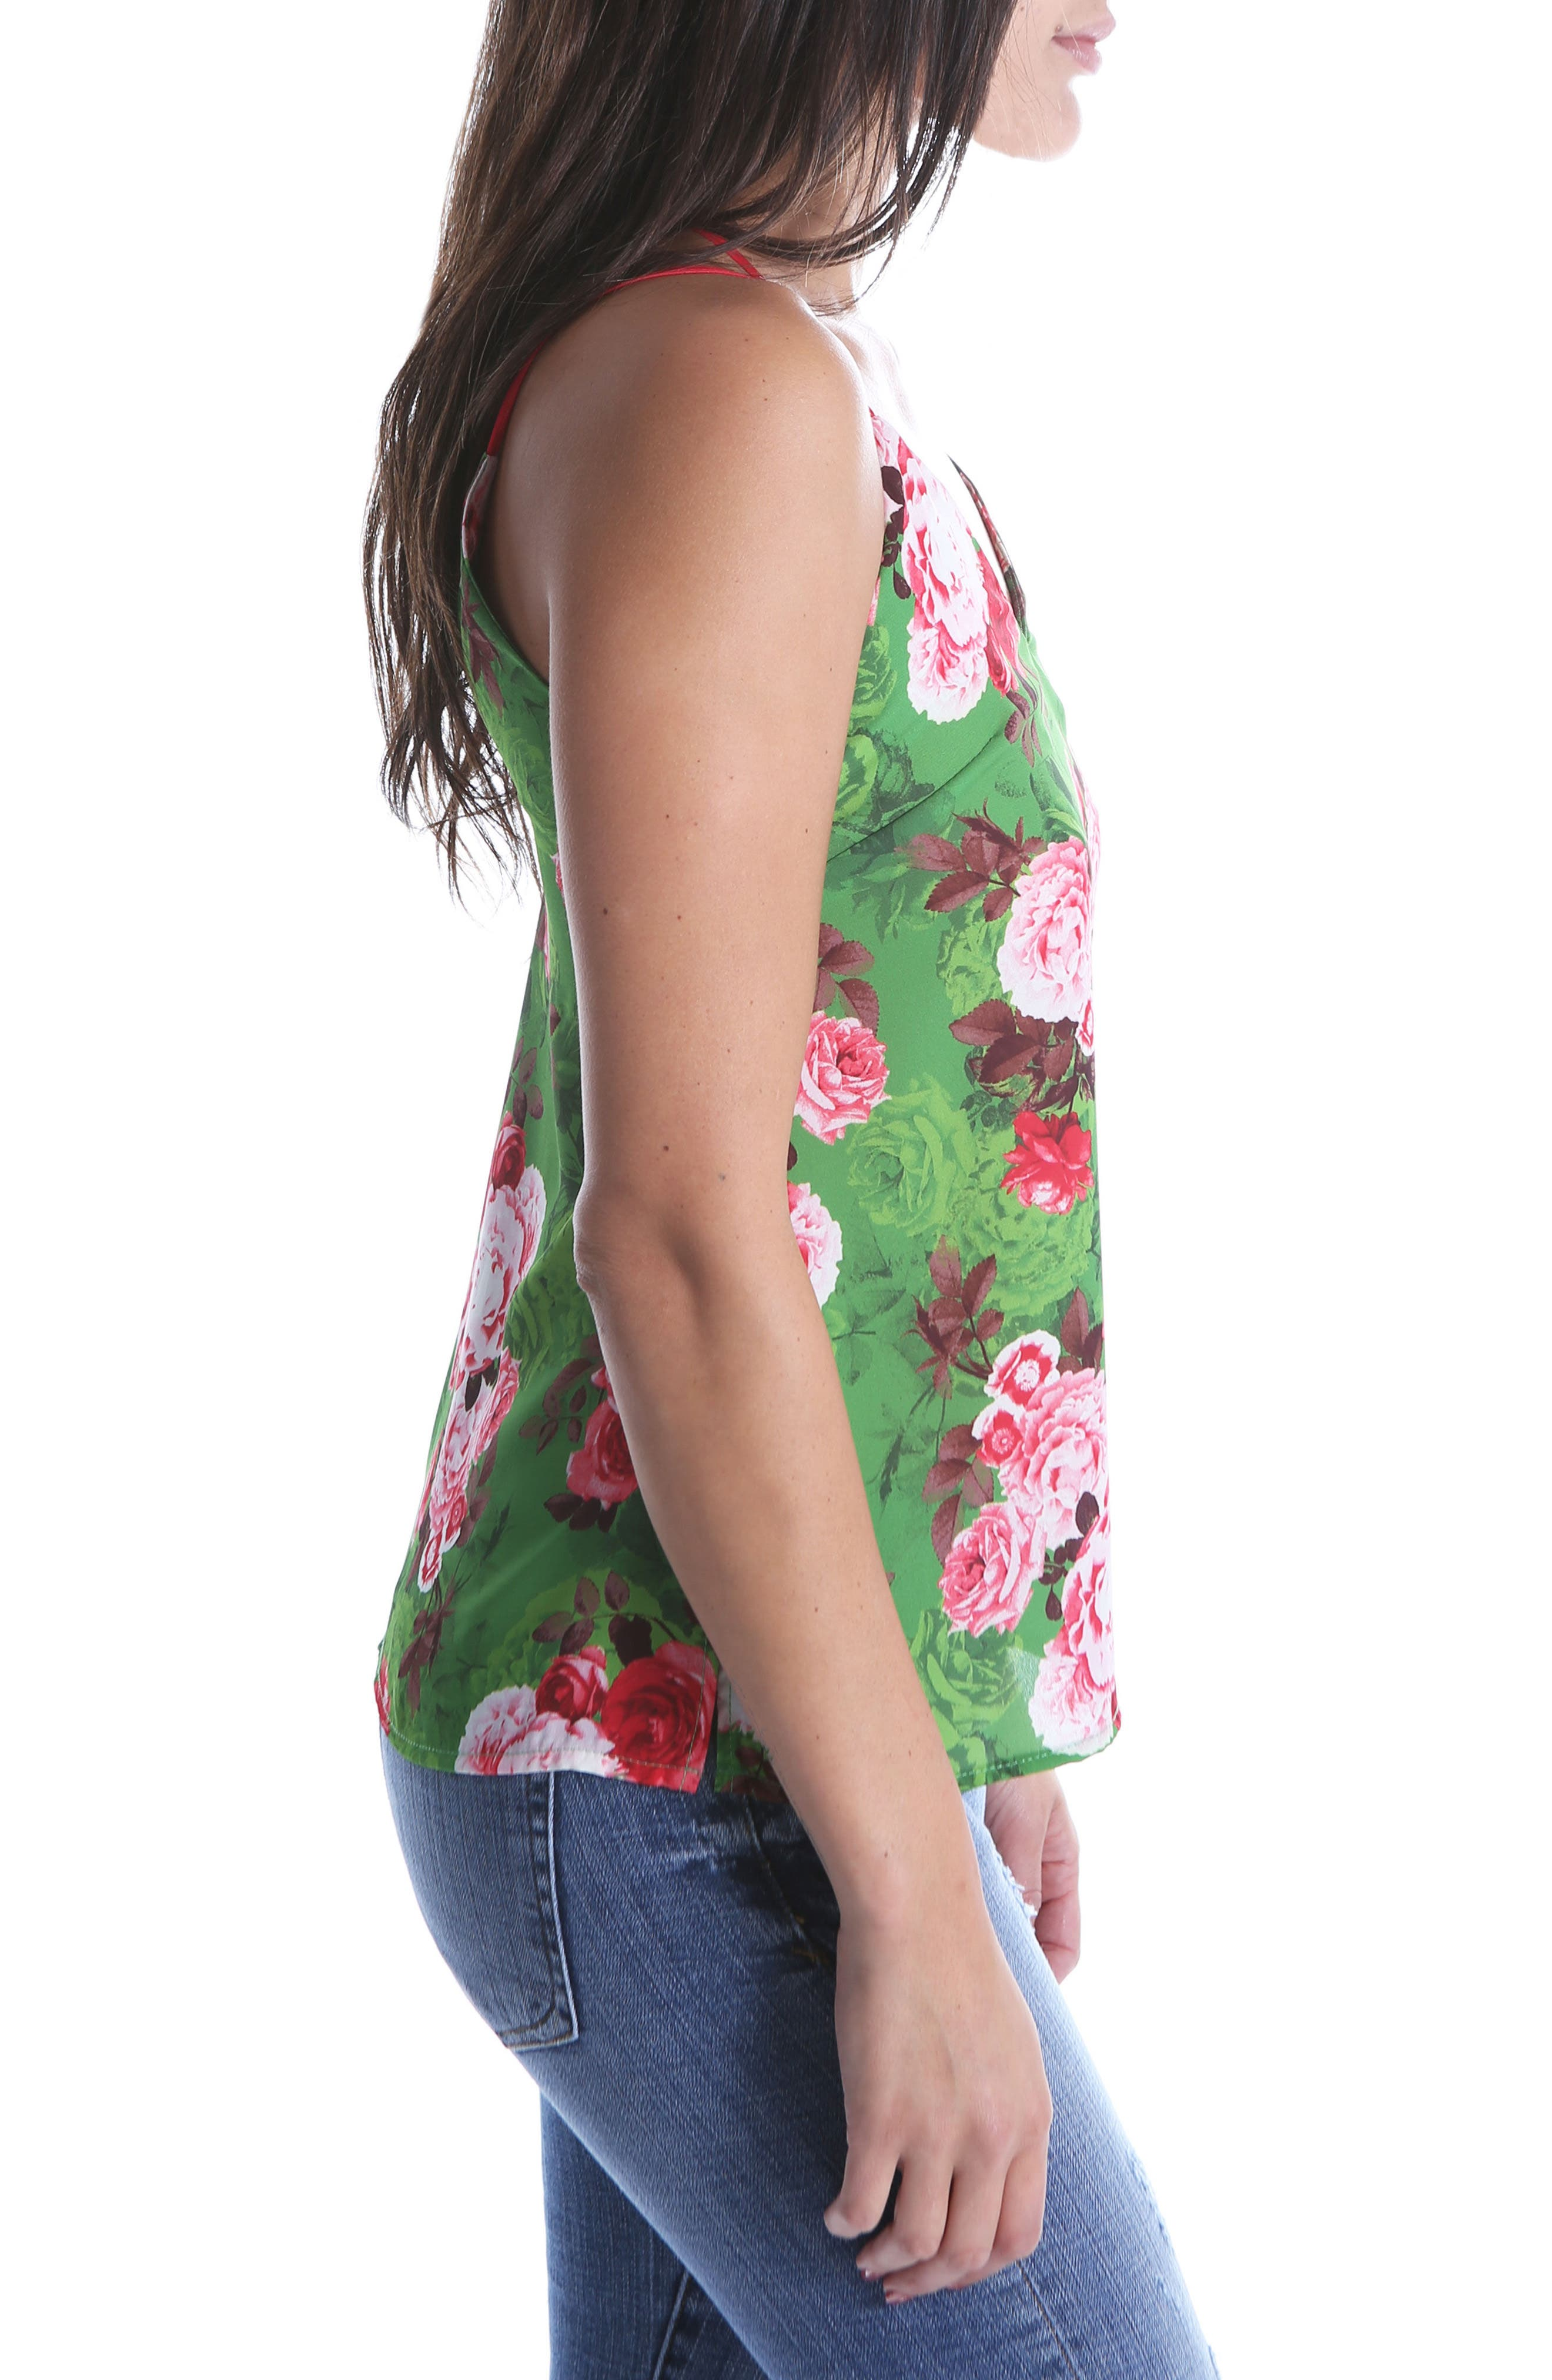 Kut From The Kloth Dana Print Camisole Top,                             Alternate thumbnail 3, color,                             355